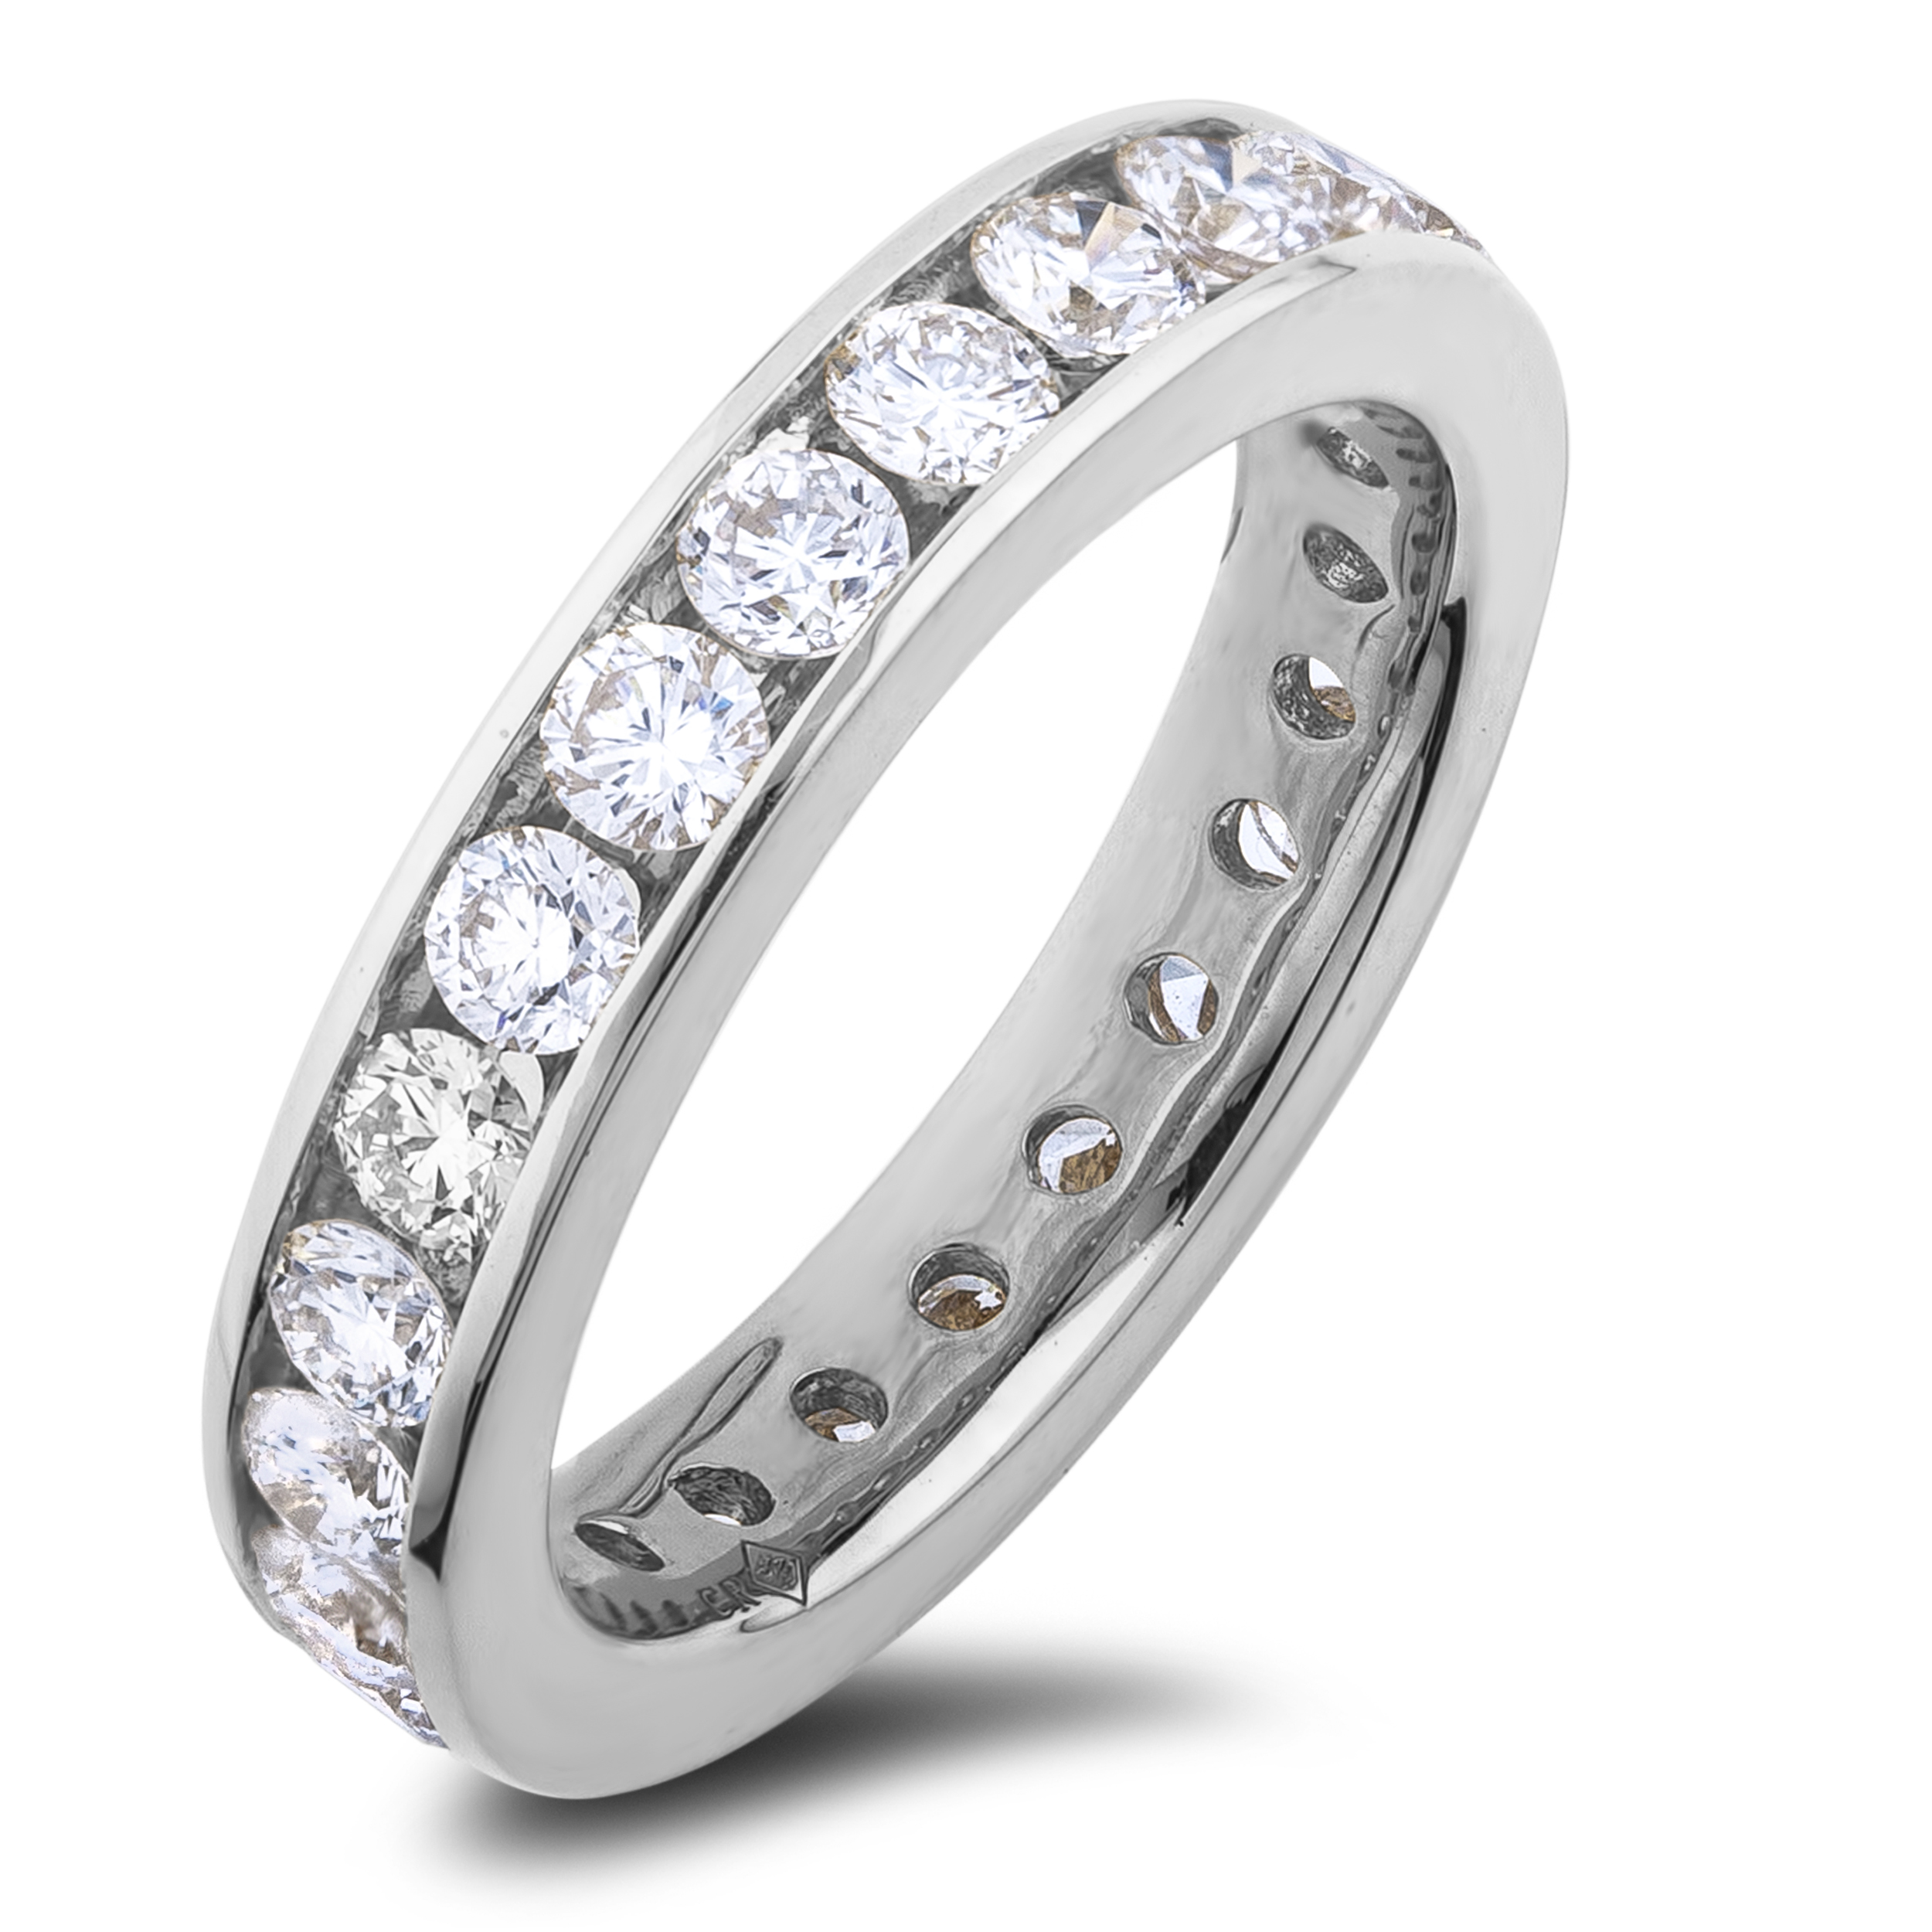 Diamond Anniversary Rings SGR1130 (Rings)